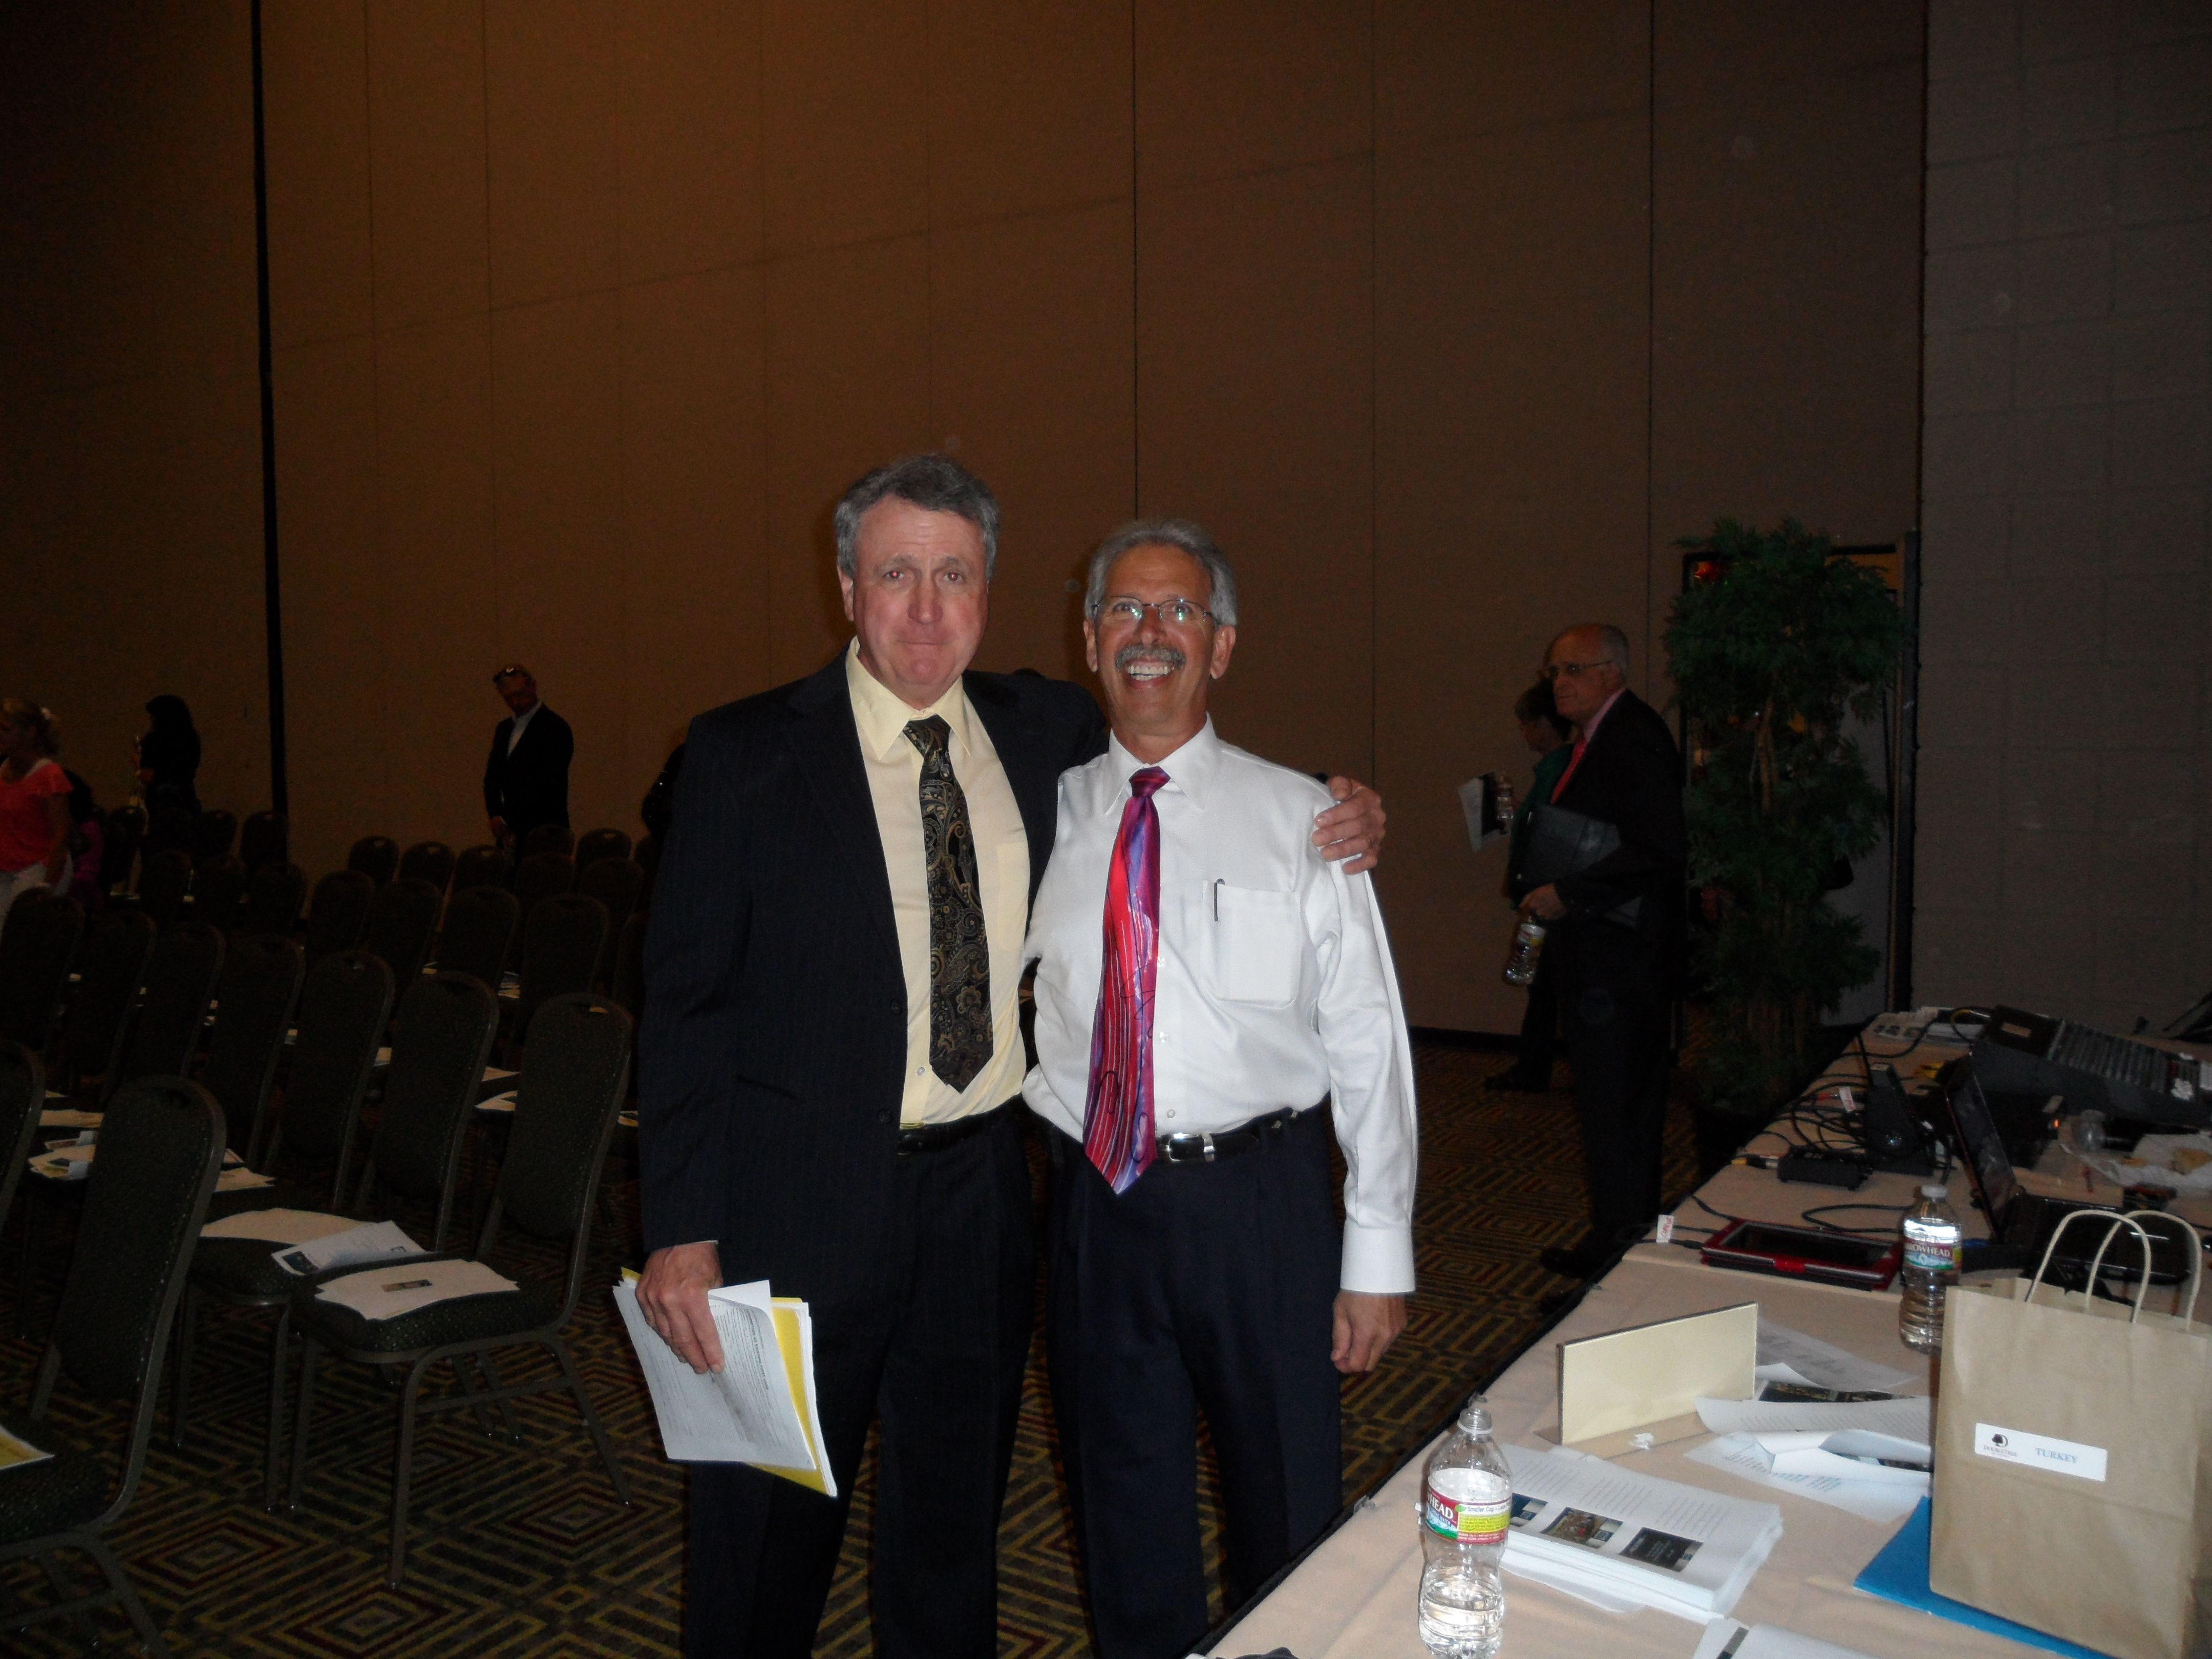 Bill Gray Of The Arizona School Of Real Estate And Business And